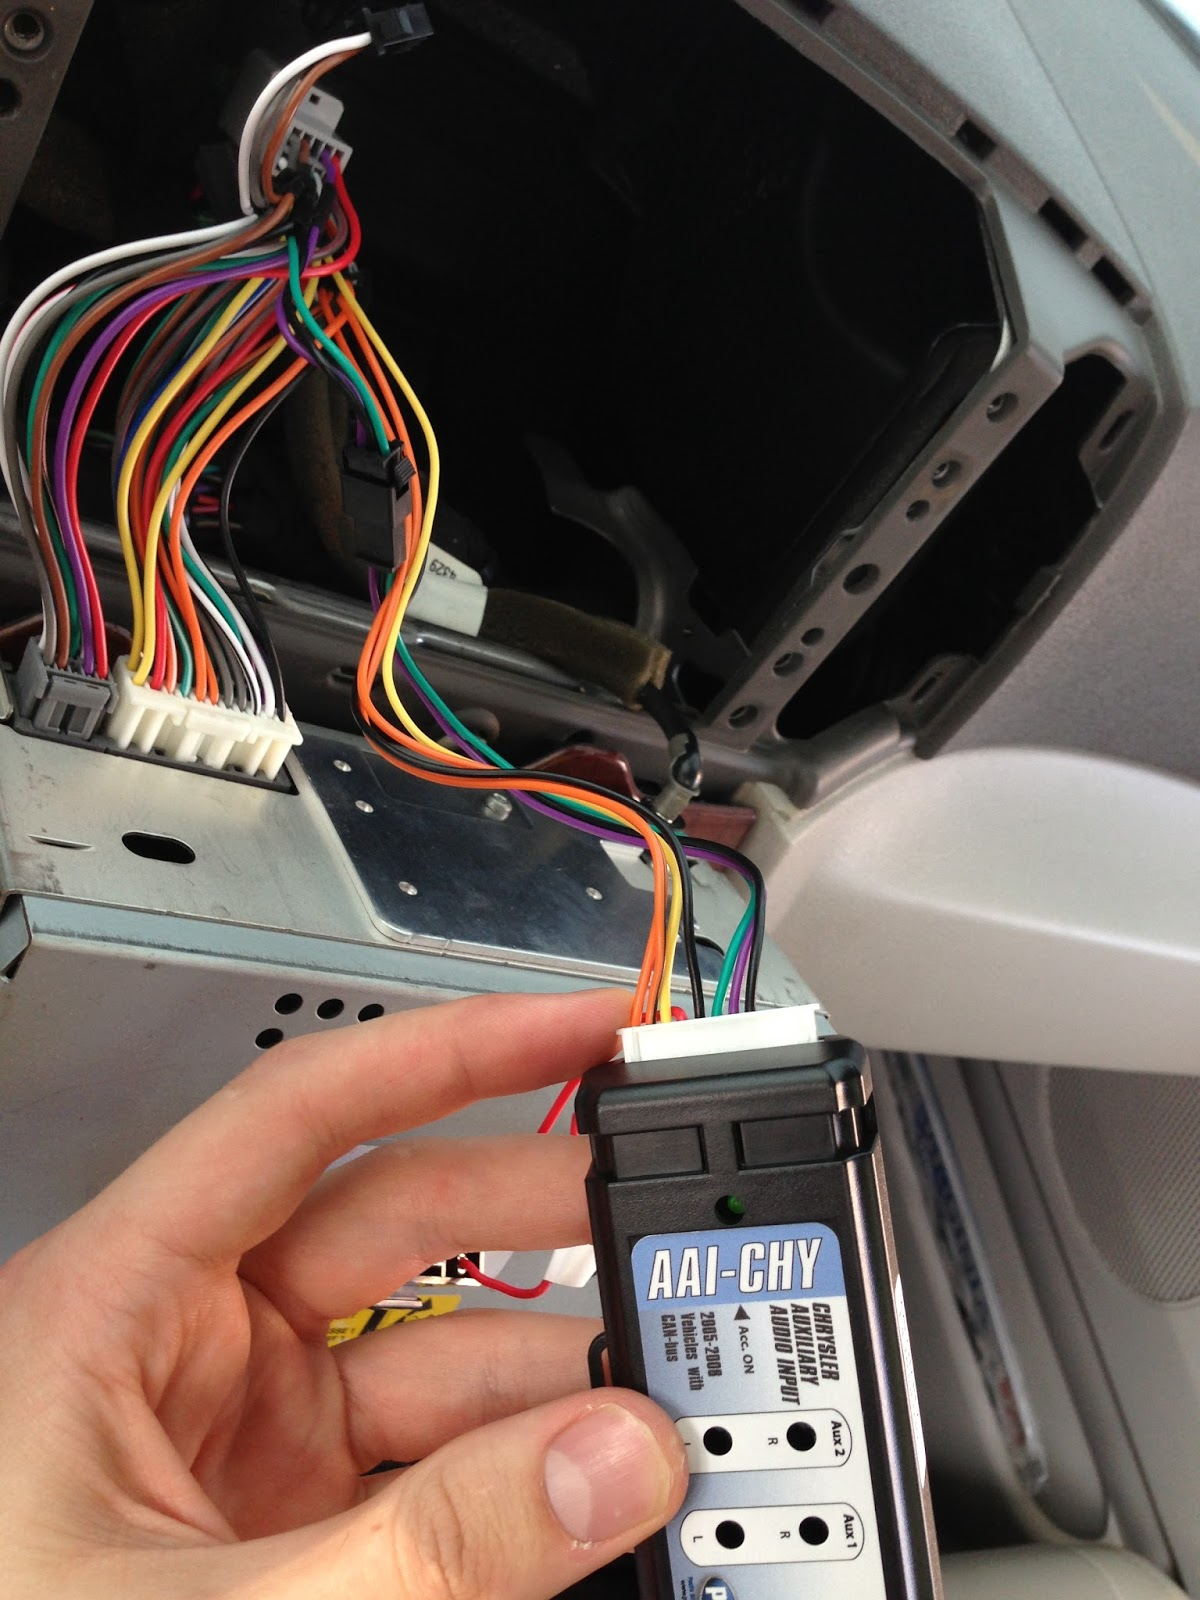 How To Add Rca Inputs Onto A Factory Car Radio Install Amp If You Are Thinking About Installing An Aftermarket External Amplifier With Stock System Will Need Manually